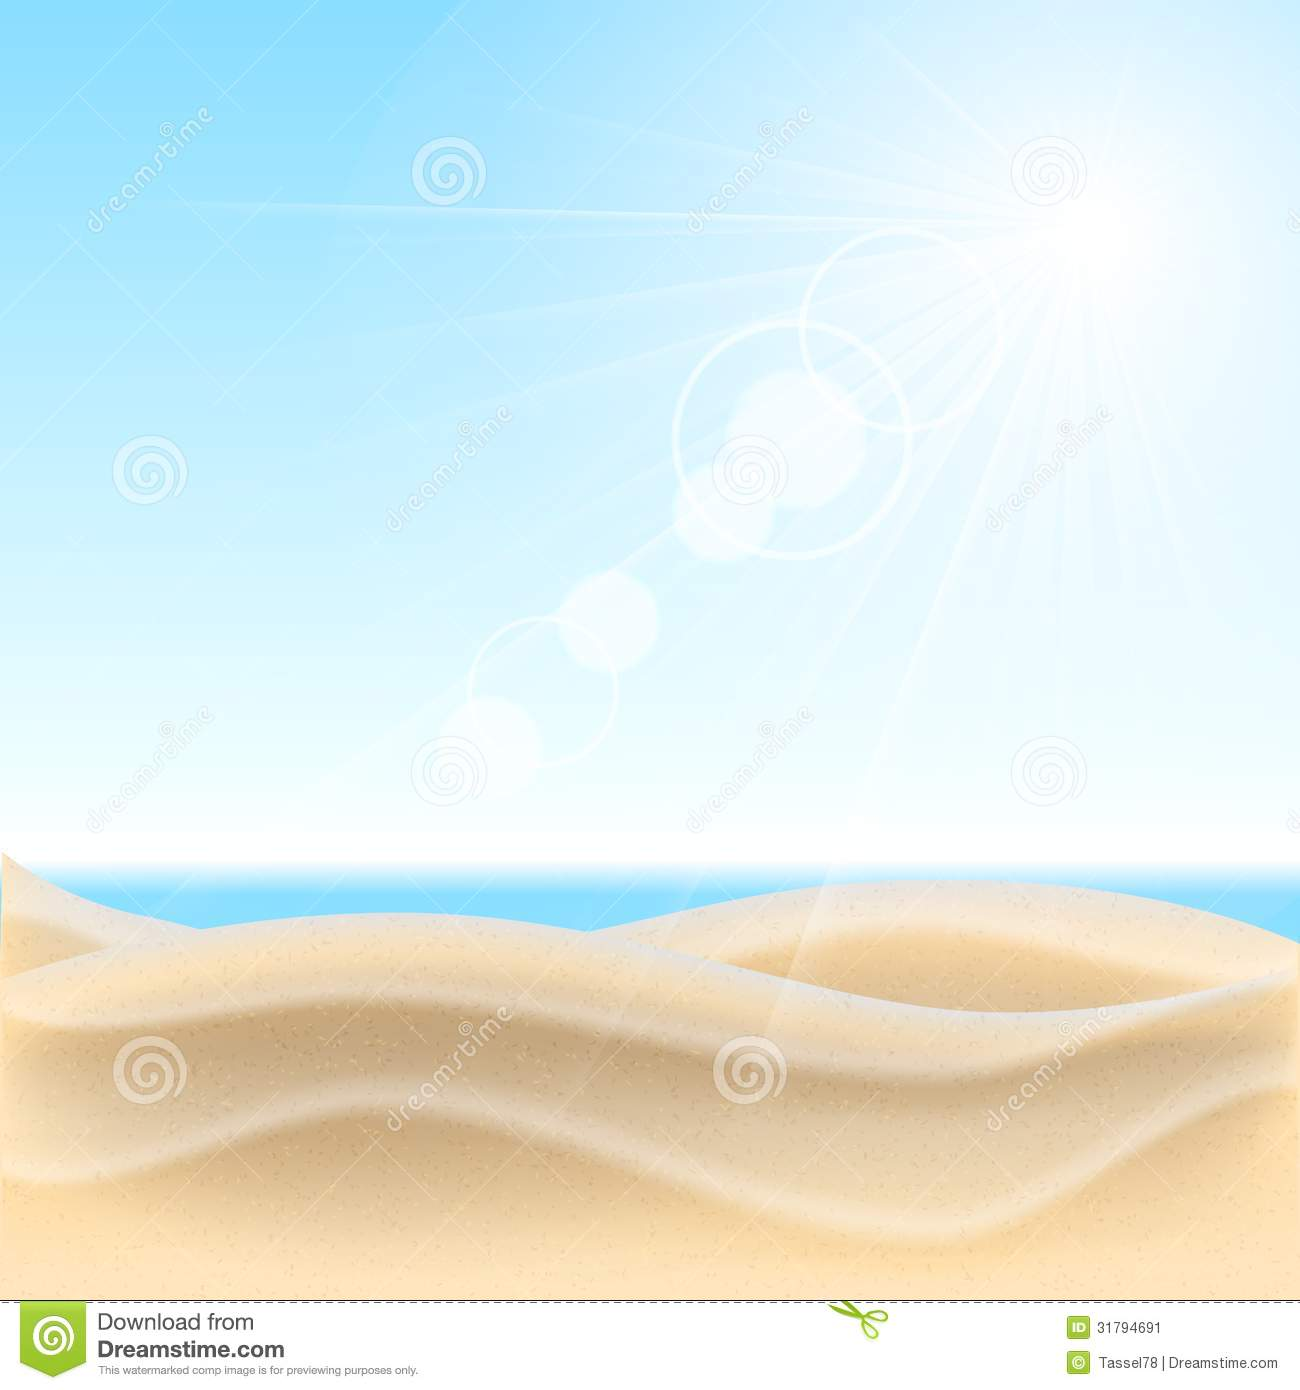 Sand Beach Background. Stock Vector. Illustration Of Cloud